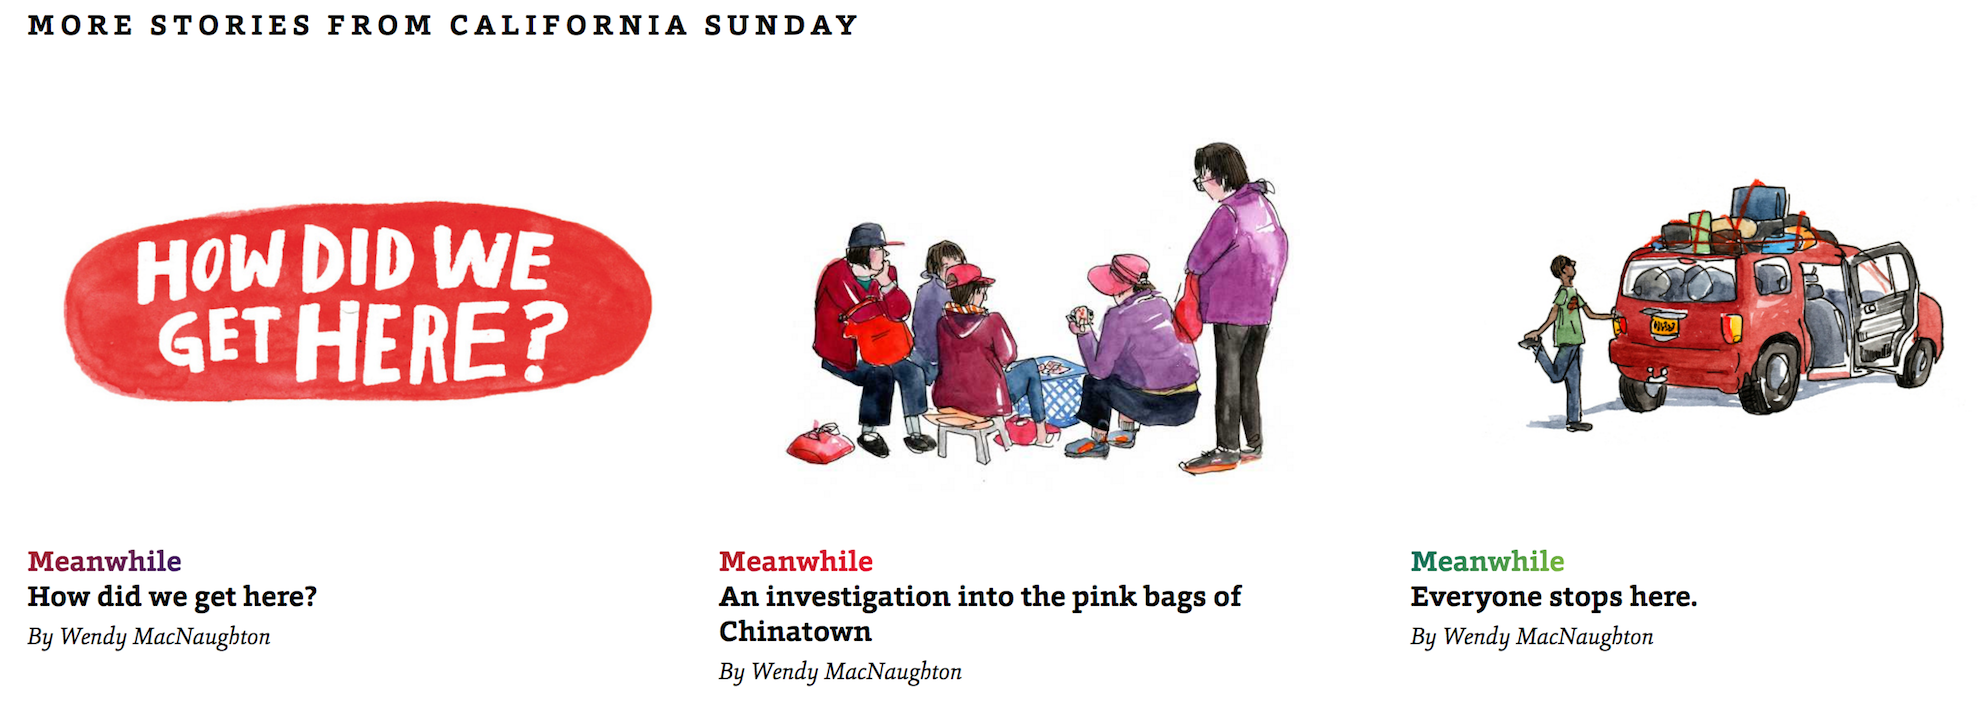 An assortment of illustrated stories from California Sunday.